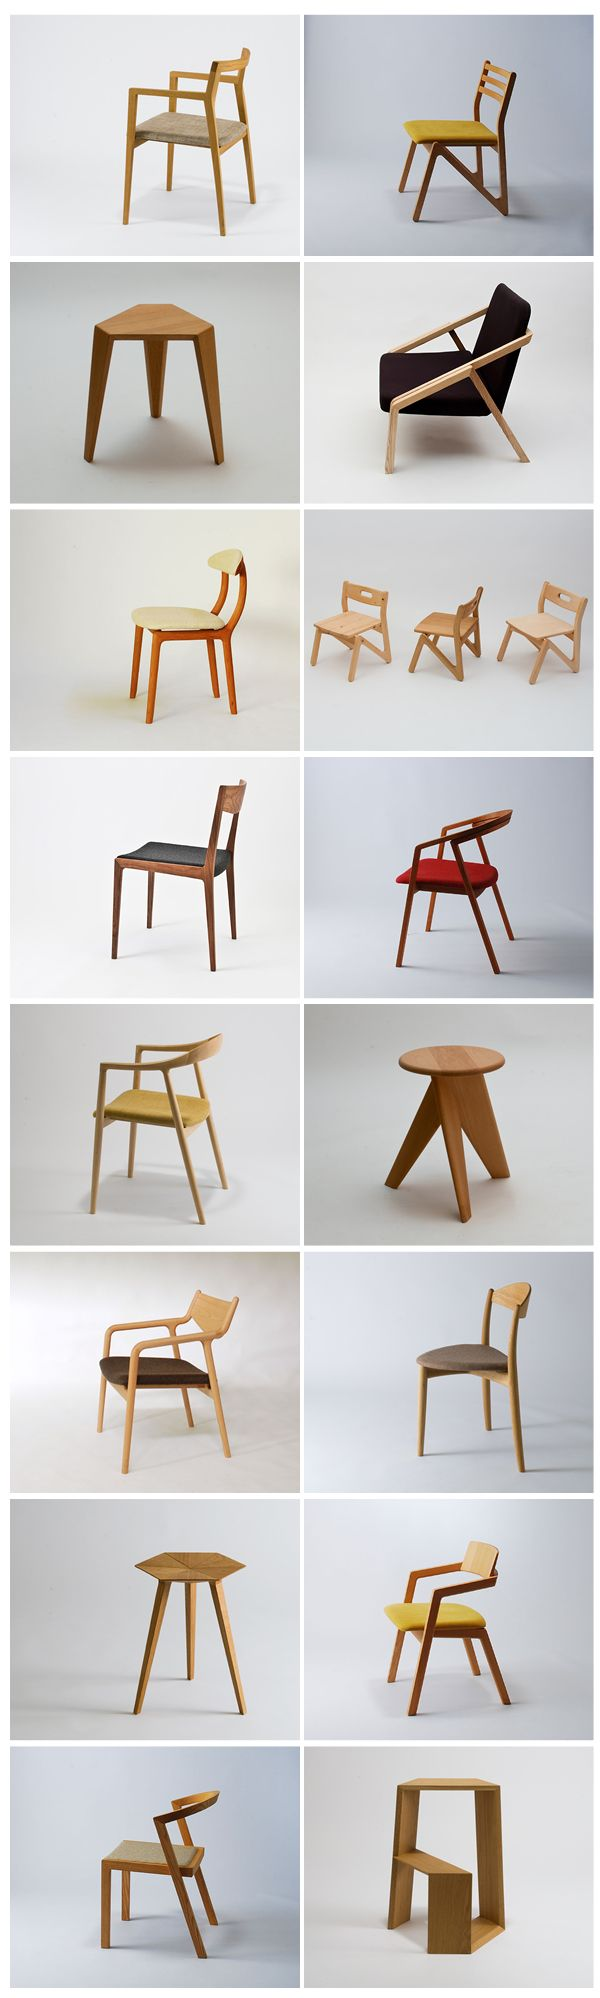 chair table designs